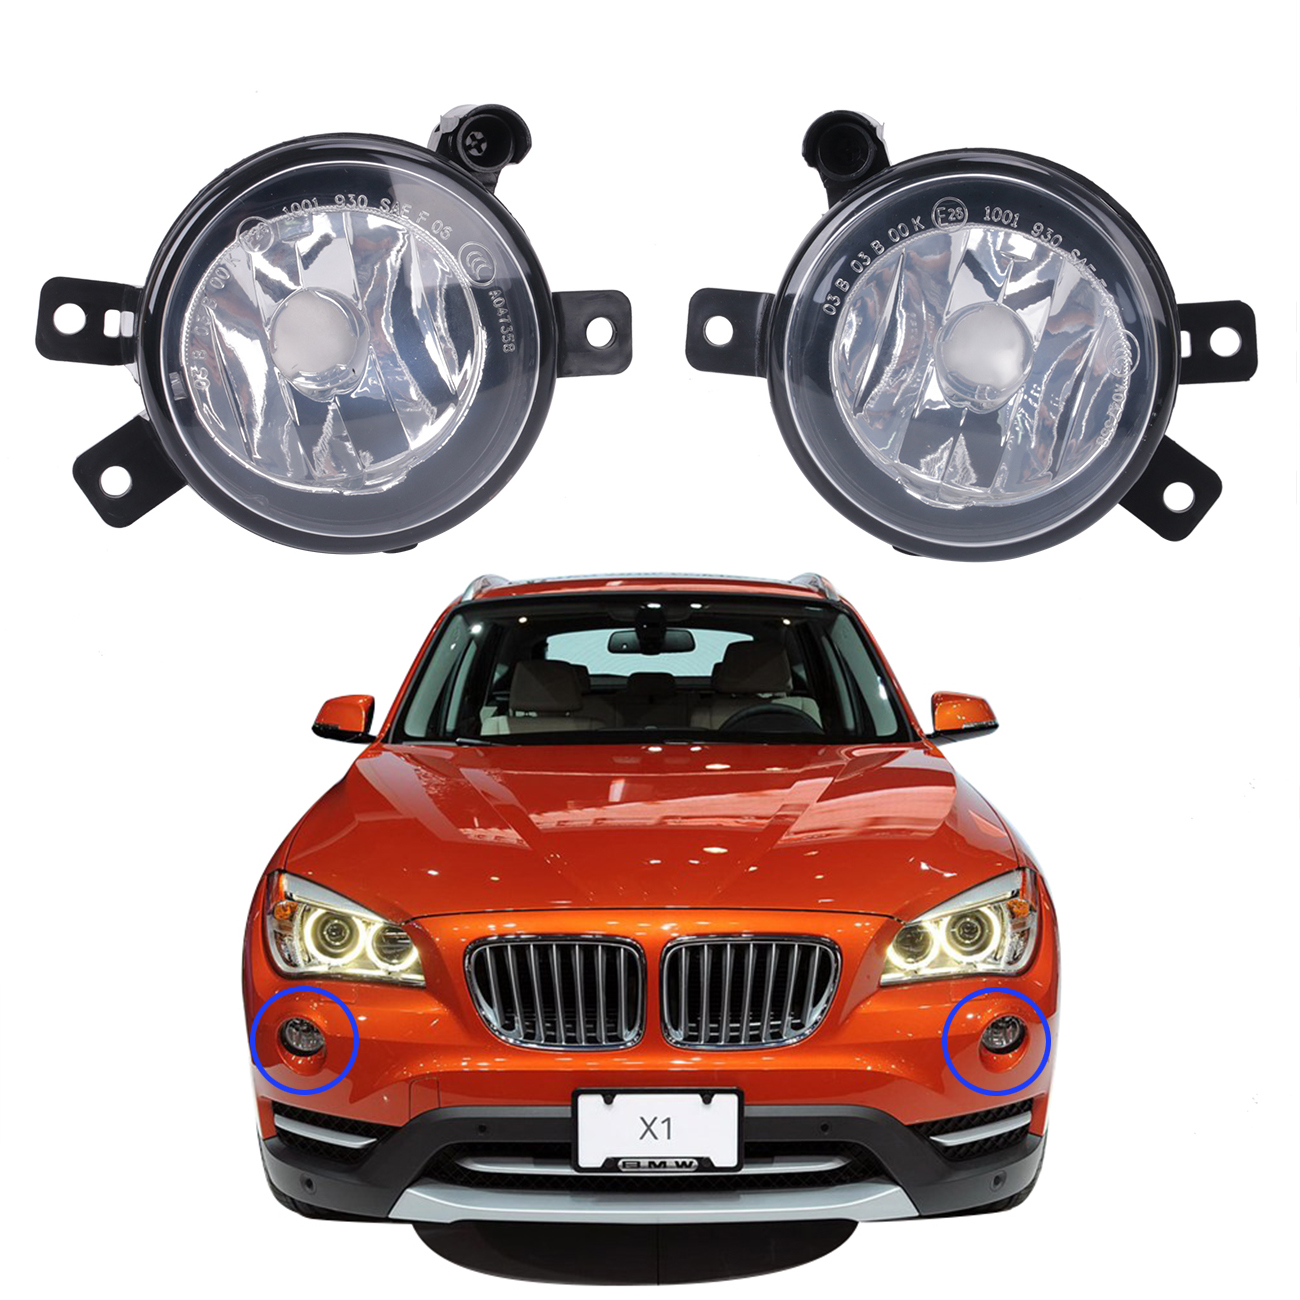 Car Front Fog Light For BMW X1 E84 Sport Model 2010 2011 2012 2013 2014 2015 Left+Right Clear Fog Lamp Foglamp Housing #W089 пороги rival bmw style hyundai ix35 2010 2013 2015 kia sportage 2010 2014 2015 круг 173 см крепеж 2 шт